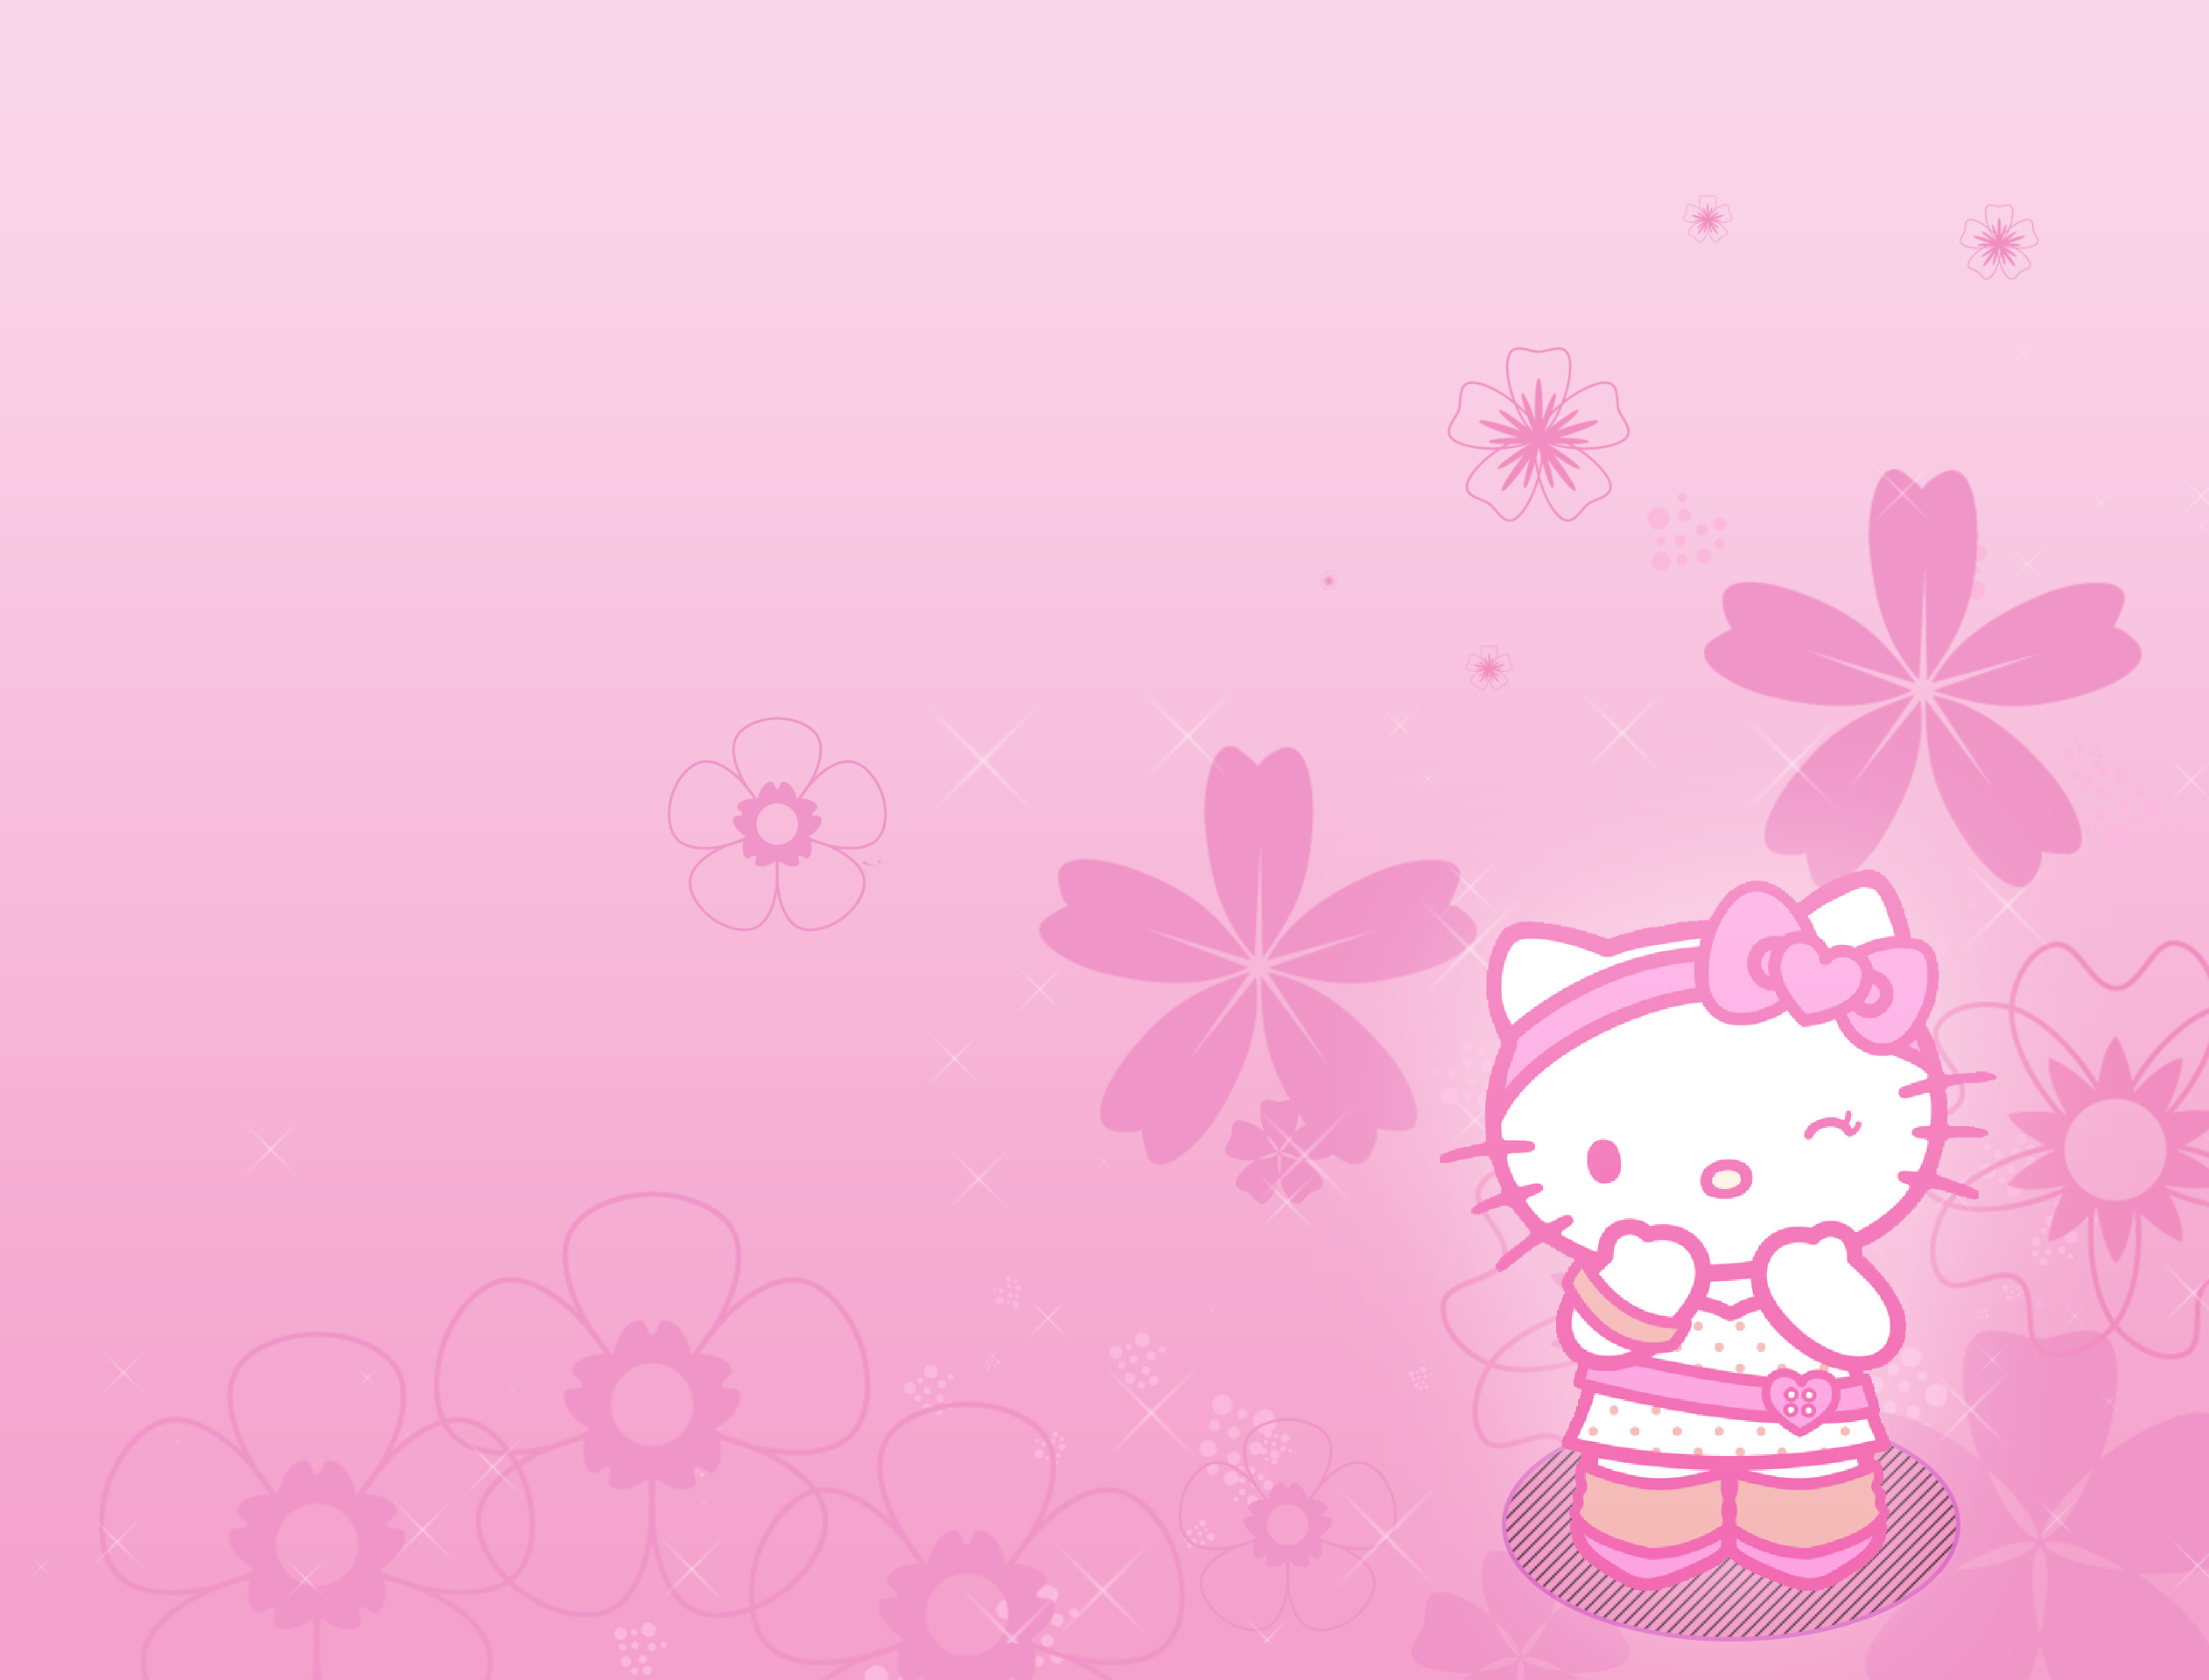 Christmas Hello Kitty Wallpaper